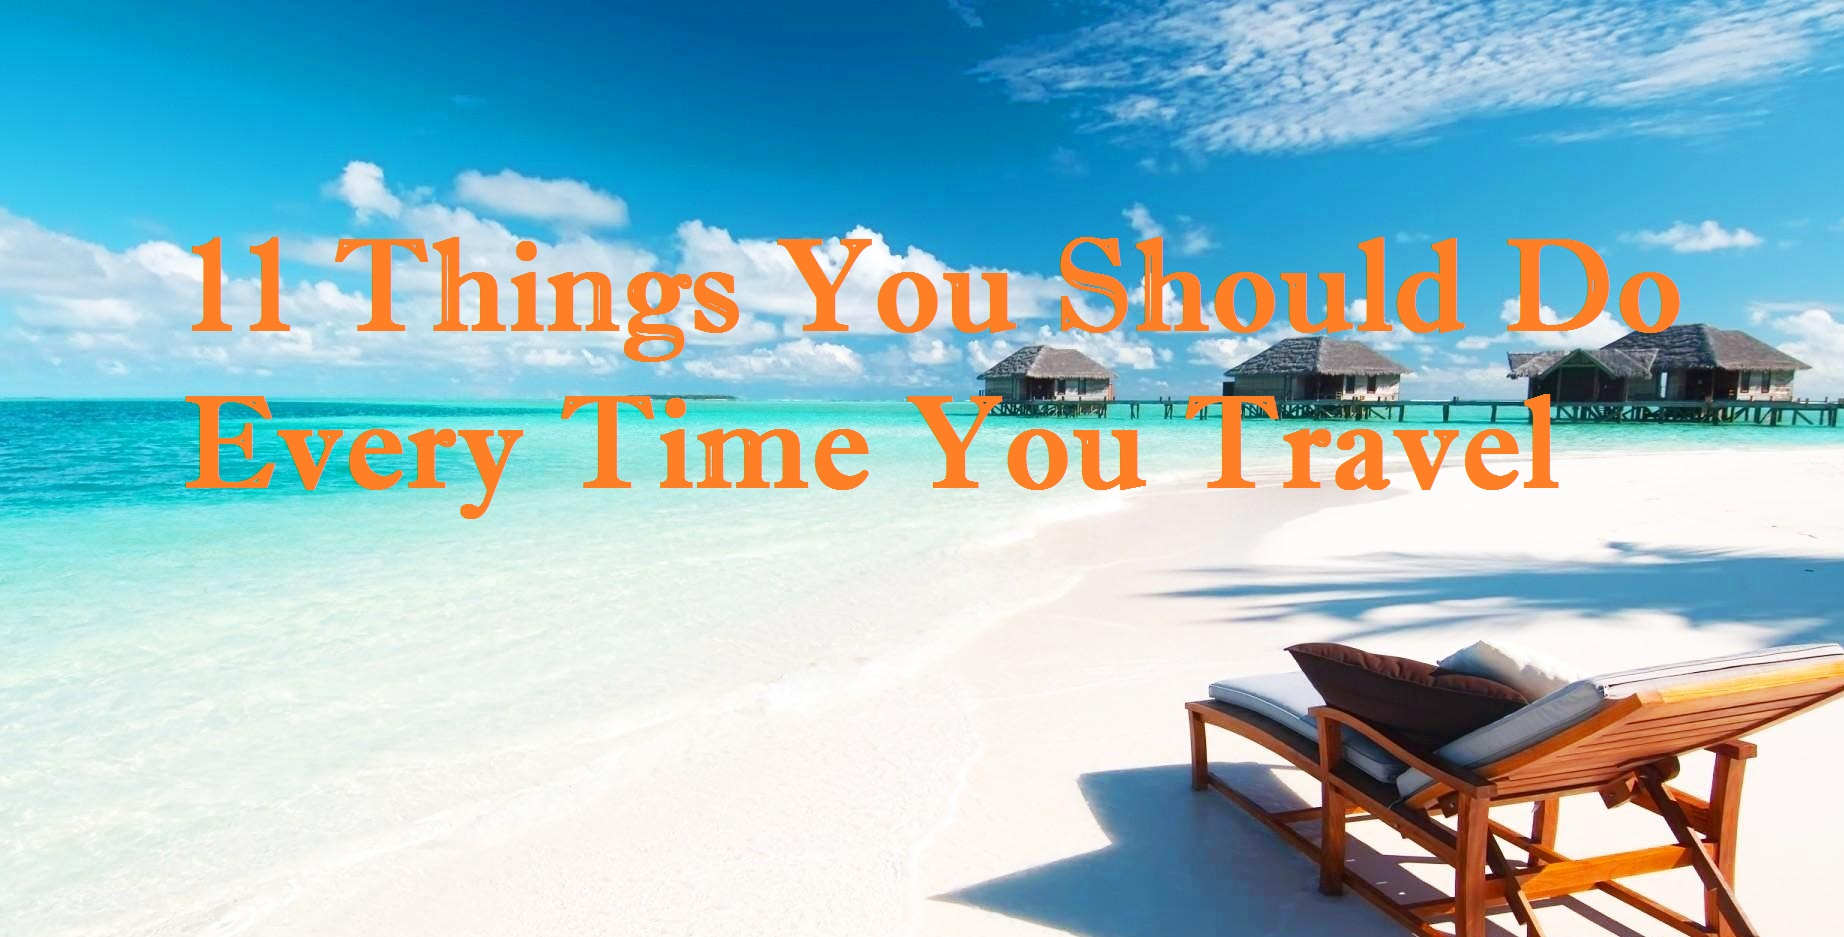 Things you should do when you travel